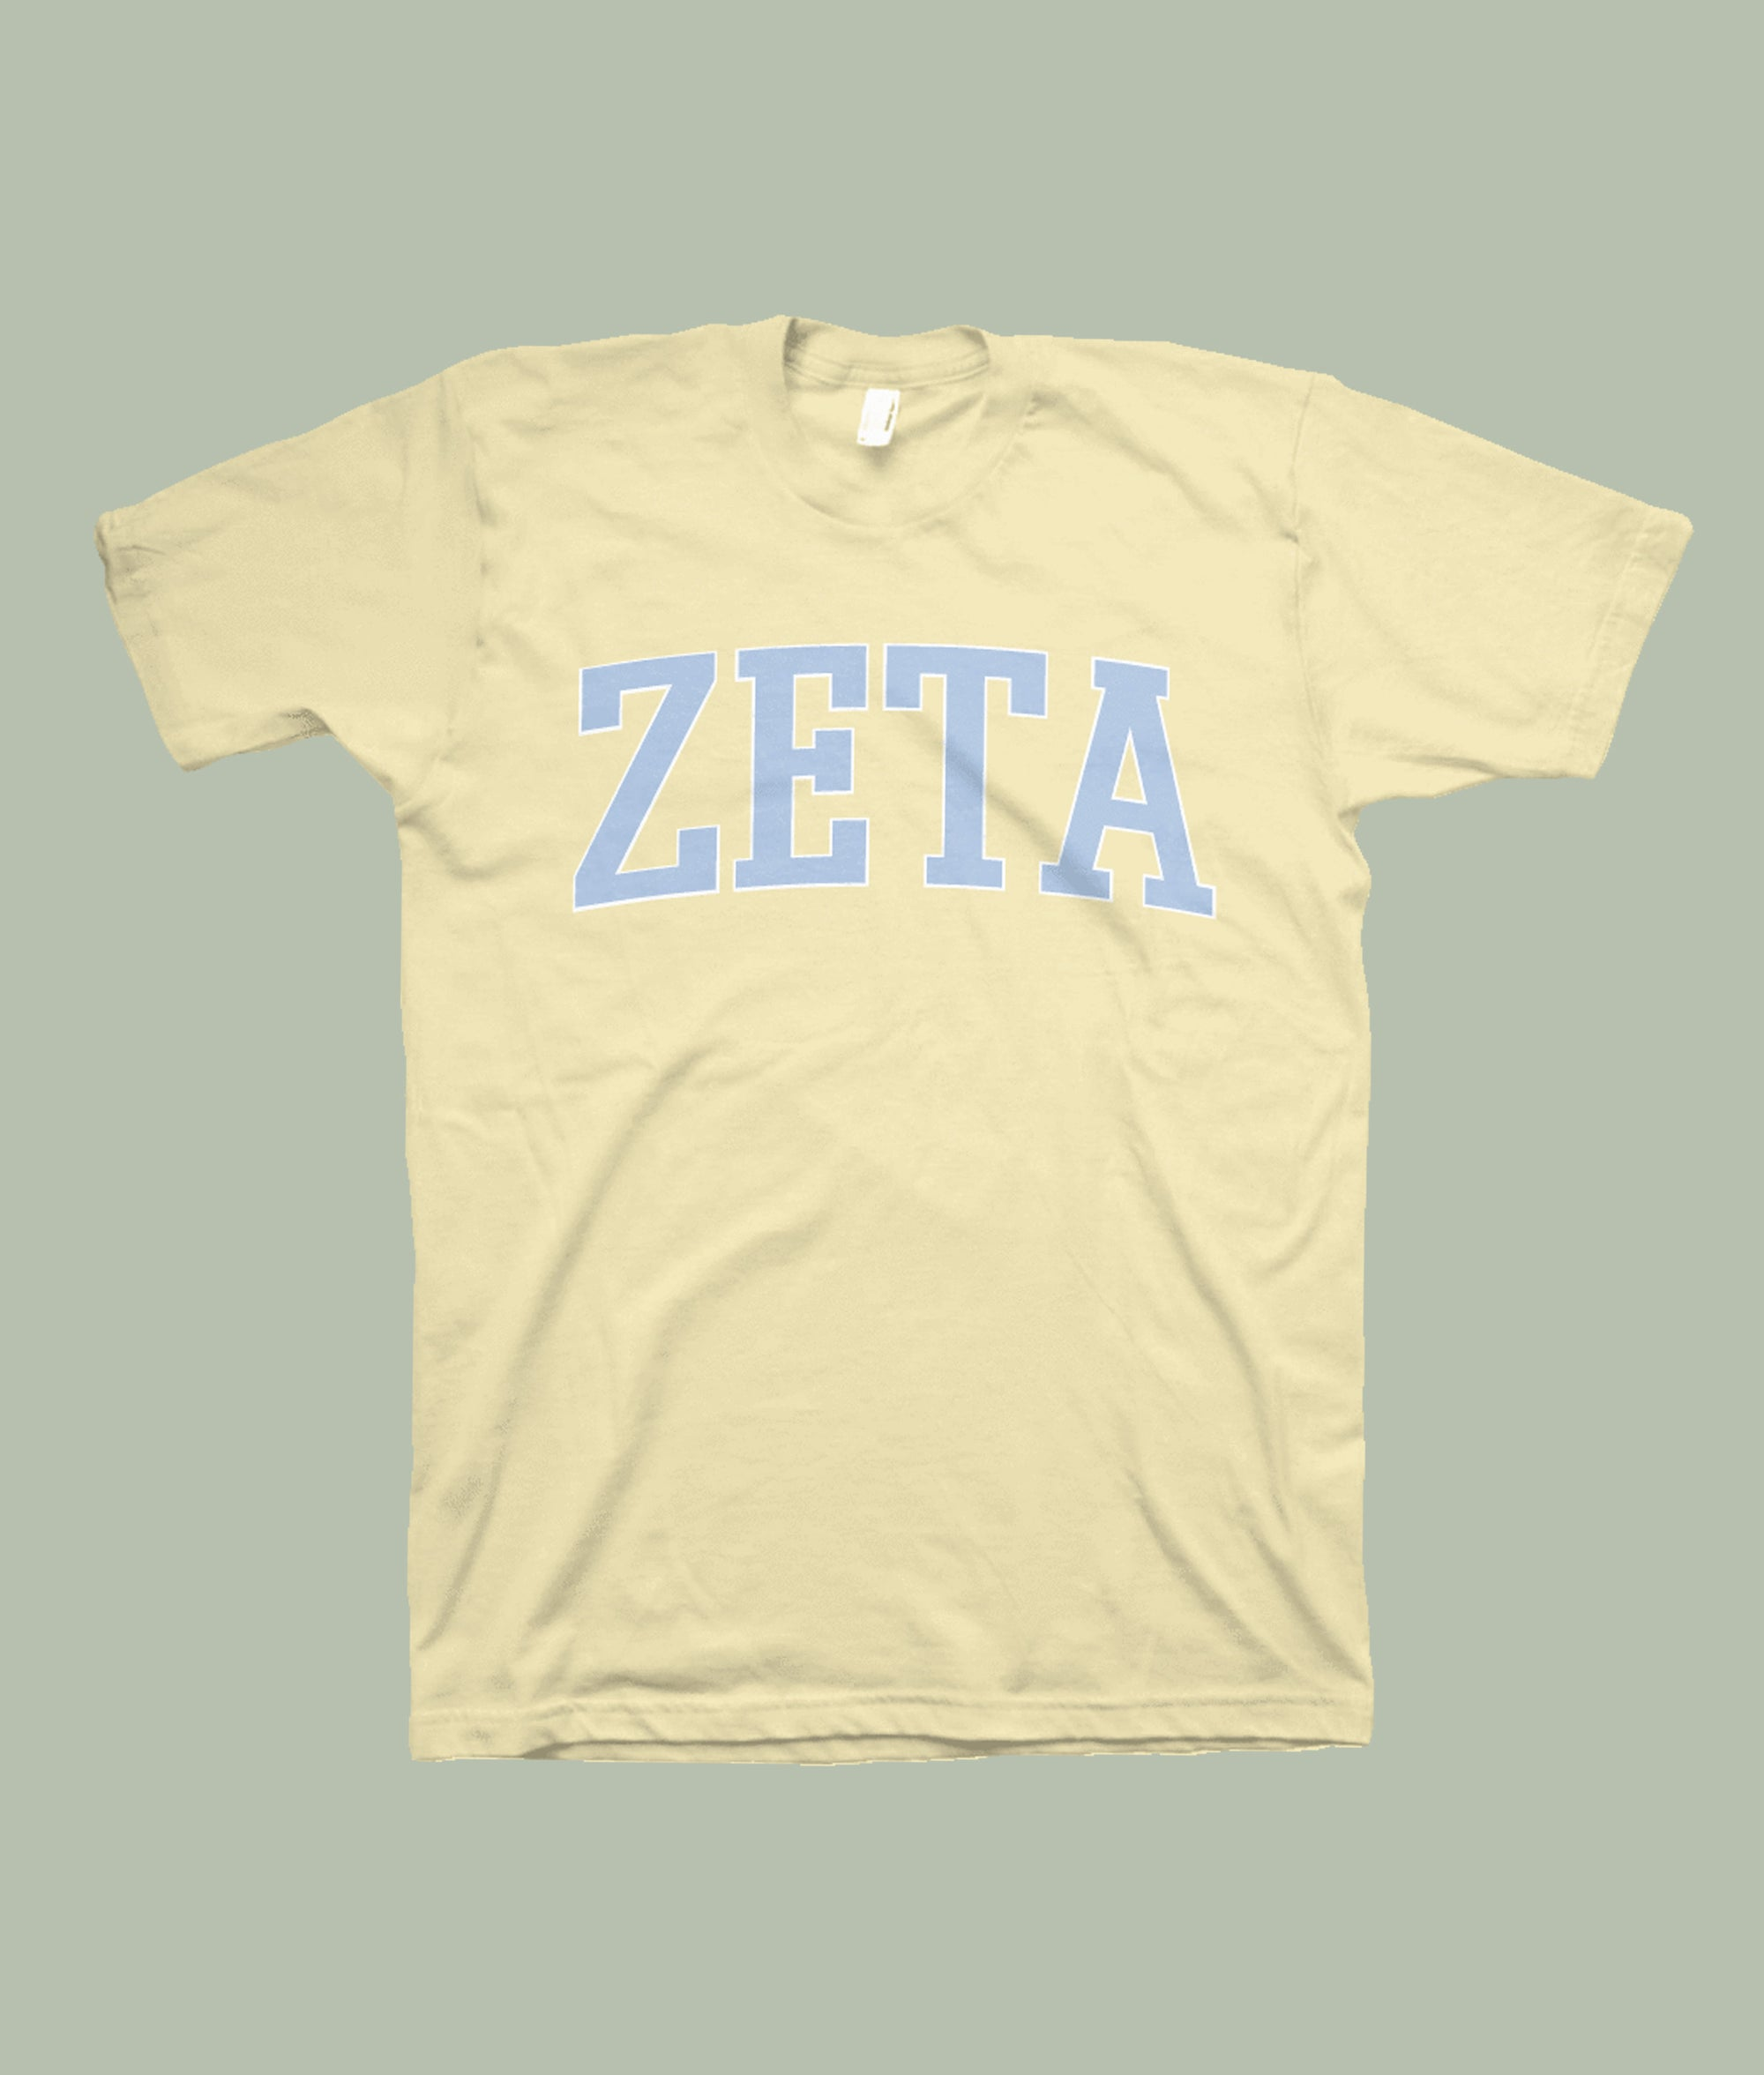 Sunny Side Up Sorority T-Shirt Zeta Tau Alpha